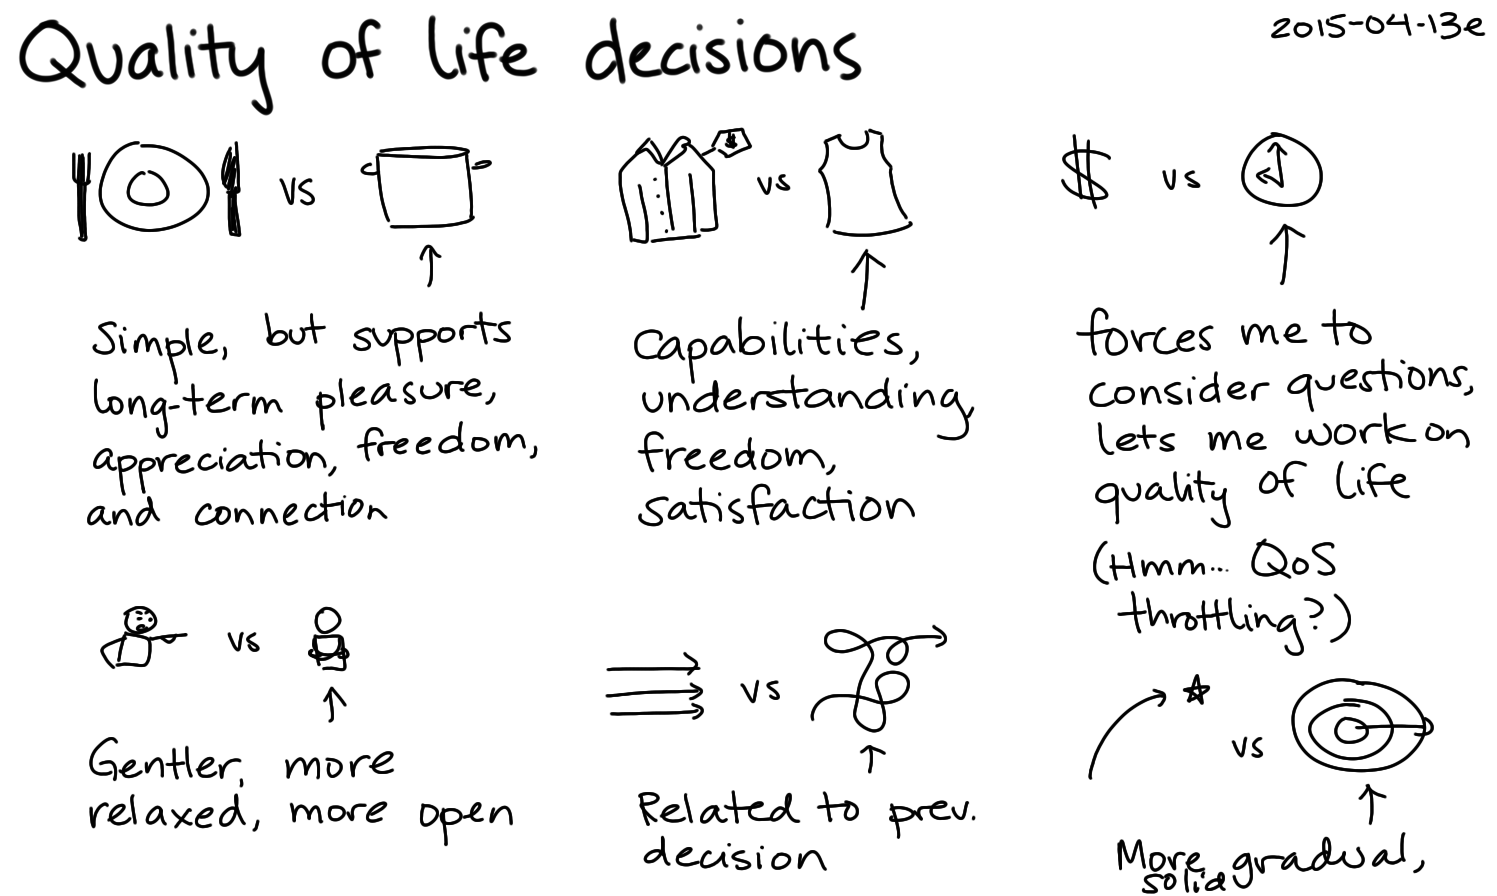 2015-04-13e Quality of life decisions -- index card #qol #quality.png